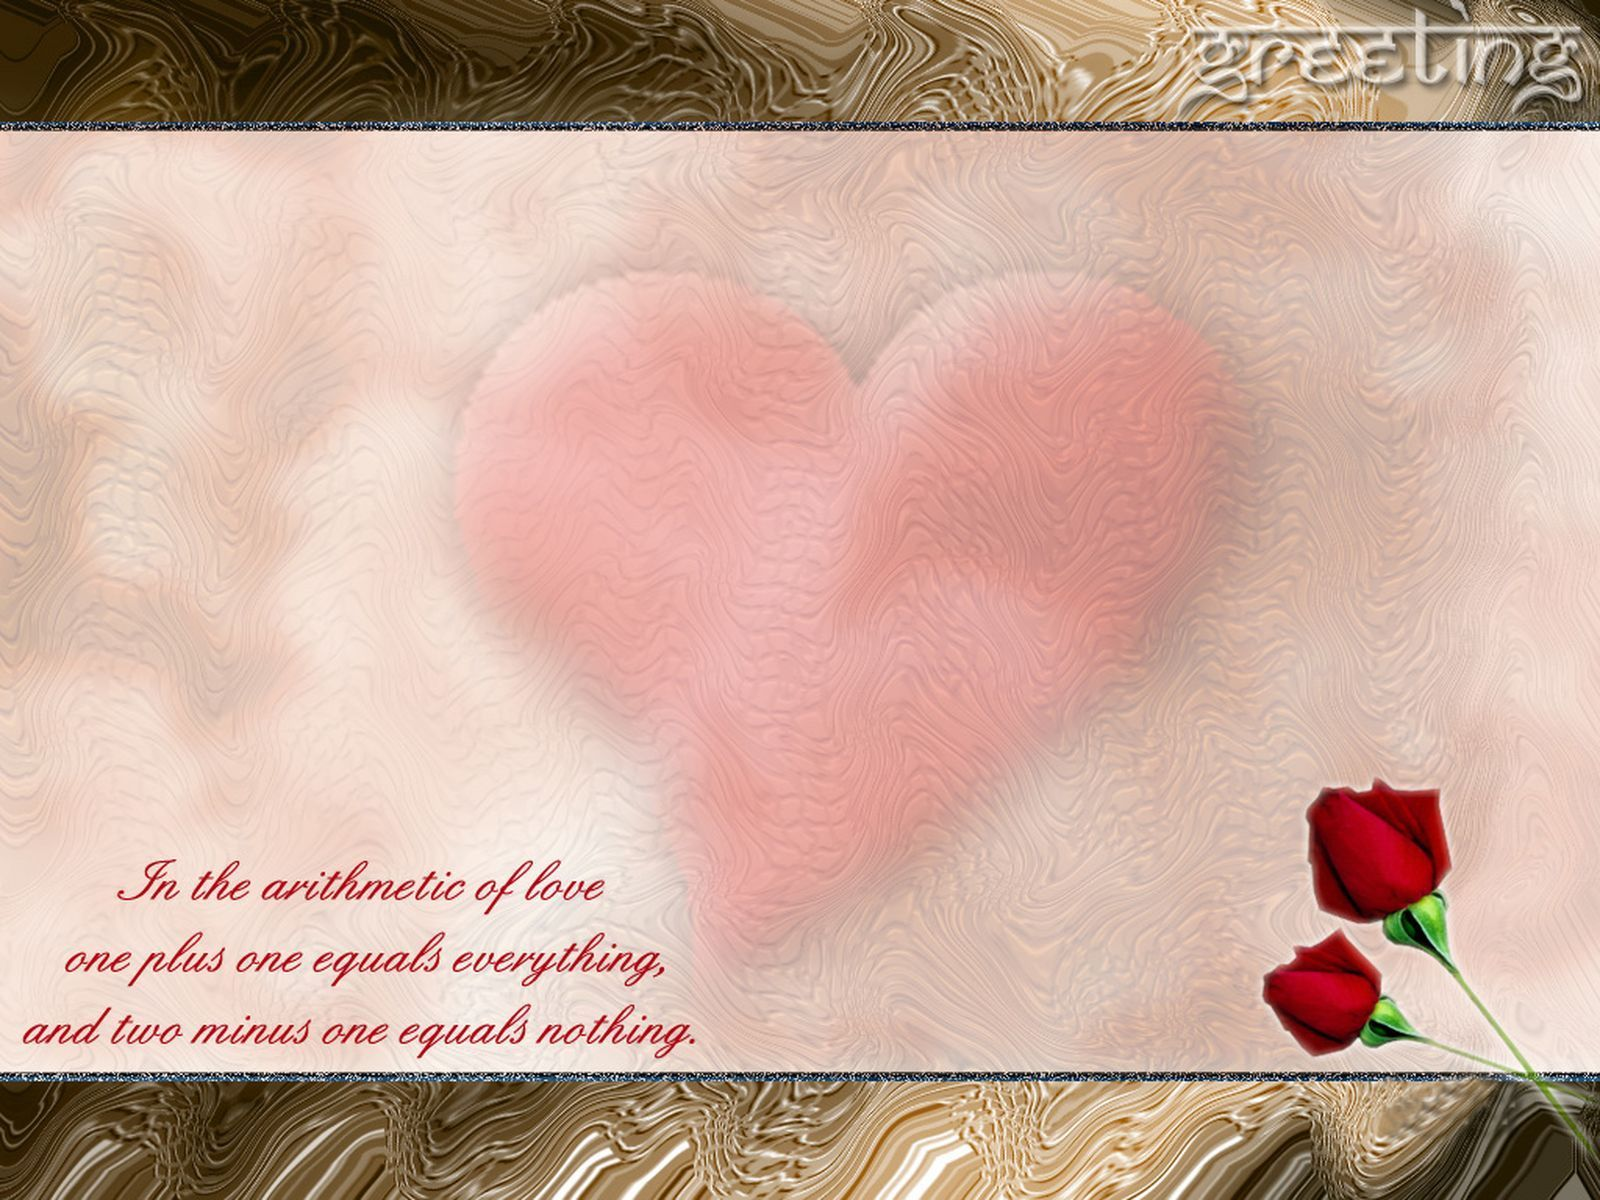 Love Wallpaper HD Love wallpapers with quotes 1600x1200